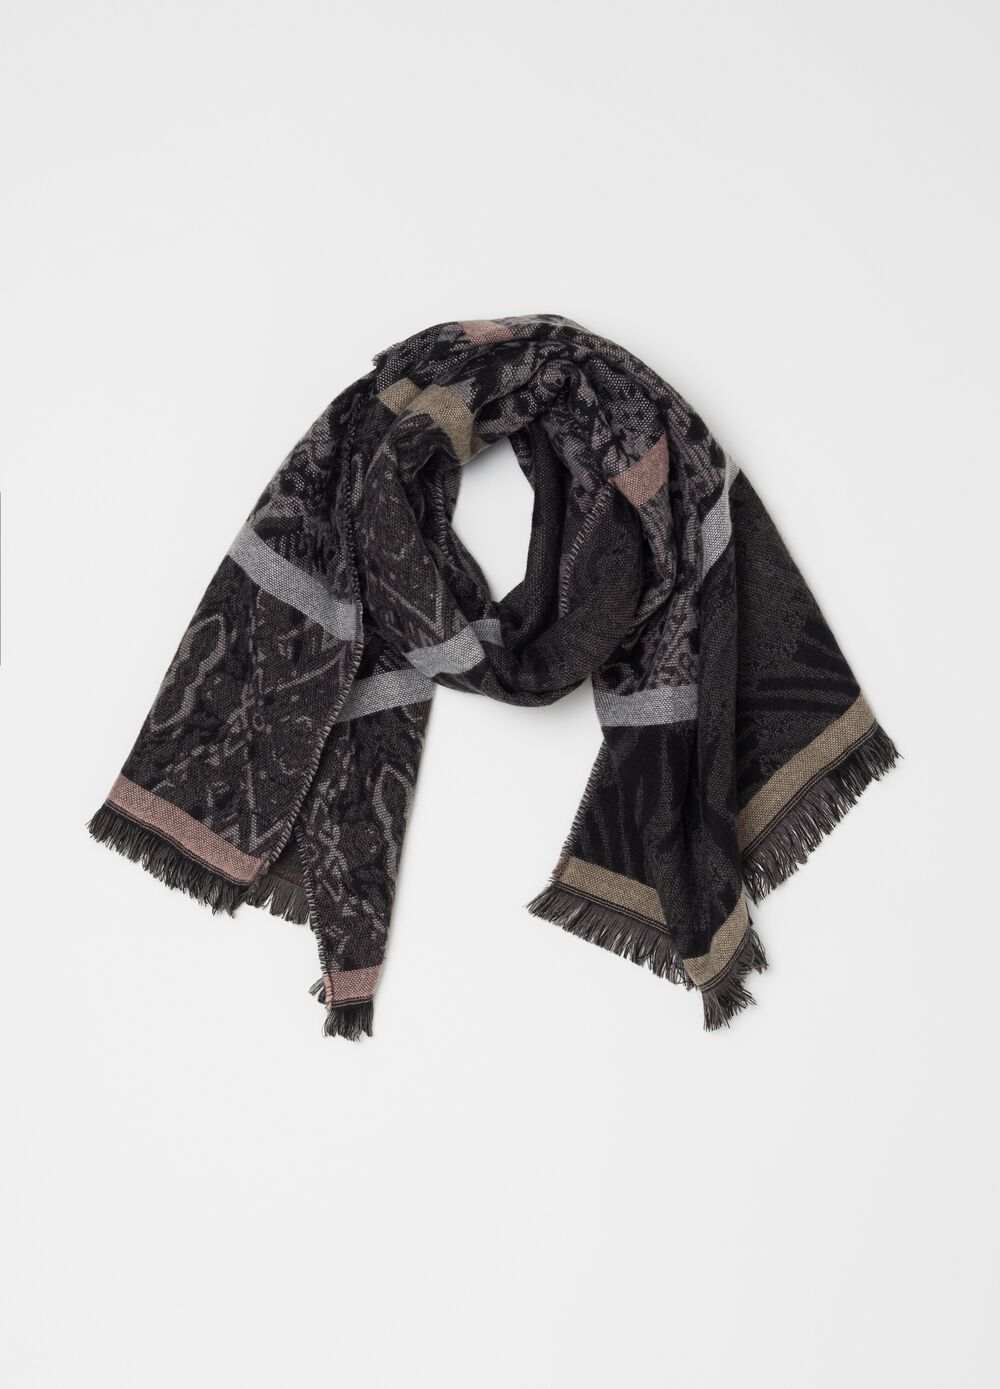 Jacquard pashmina with pattern